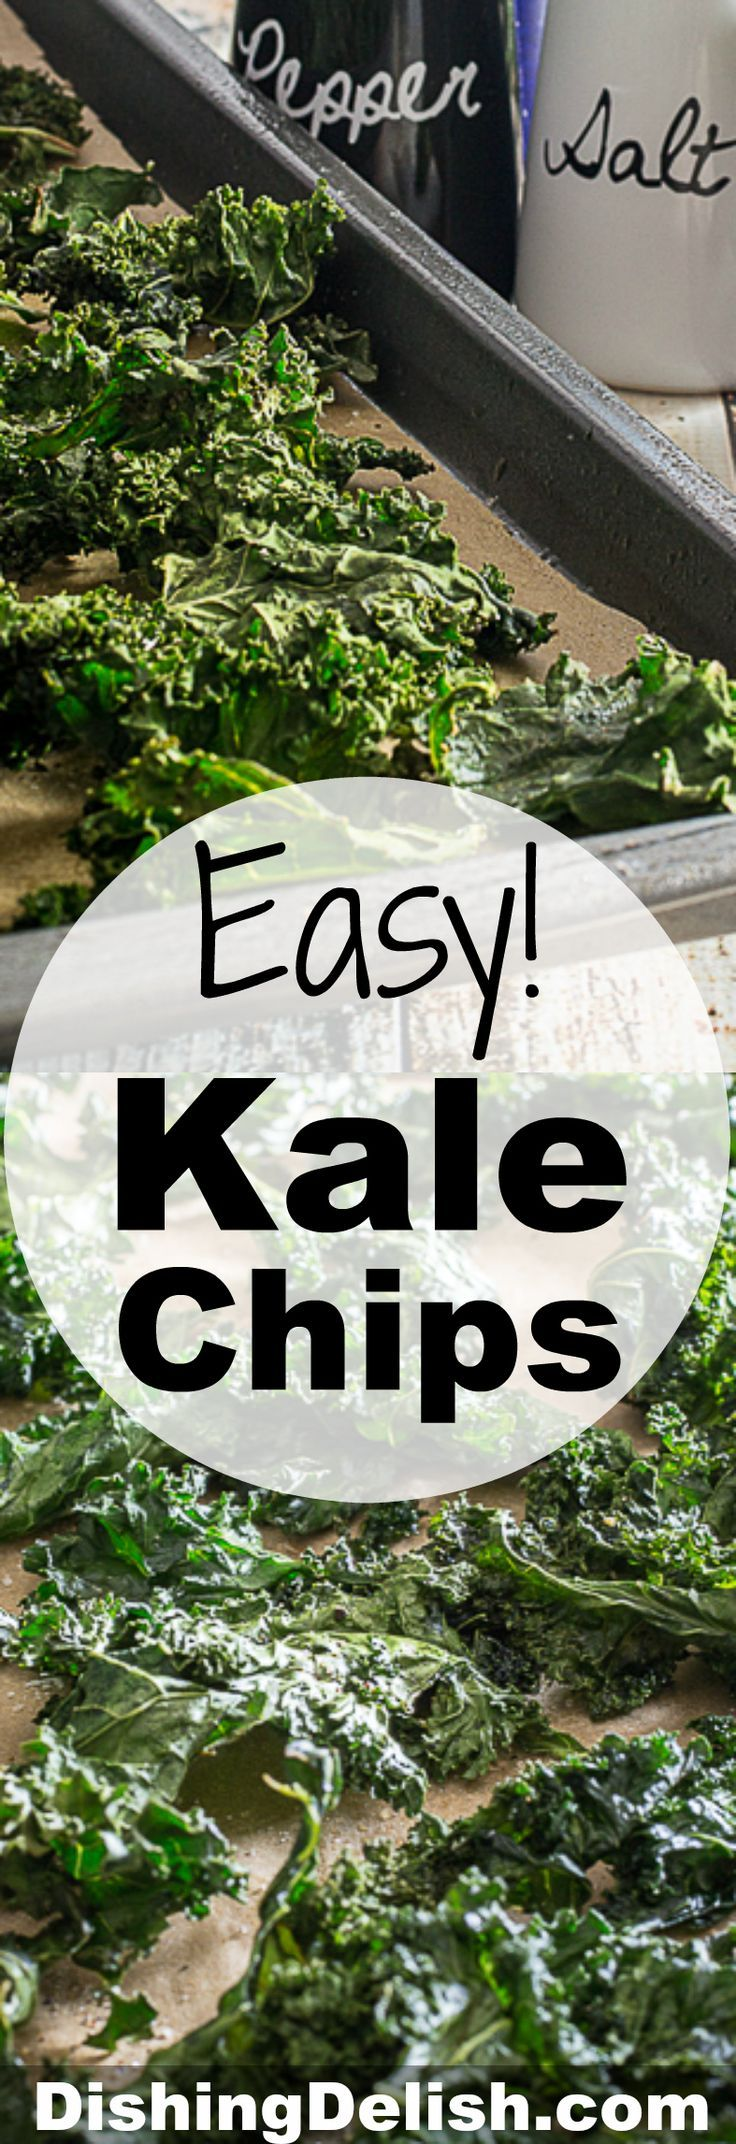 Easy Kale Chips are crispy, healthy, and deliver a satisfying salty crunch when you're craving snacks. So simple to make, you'll want these for your next movie night!